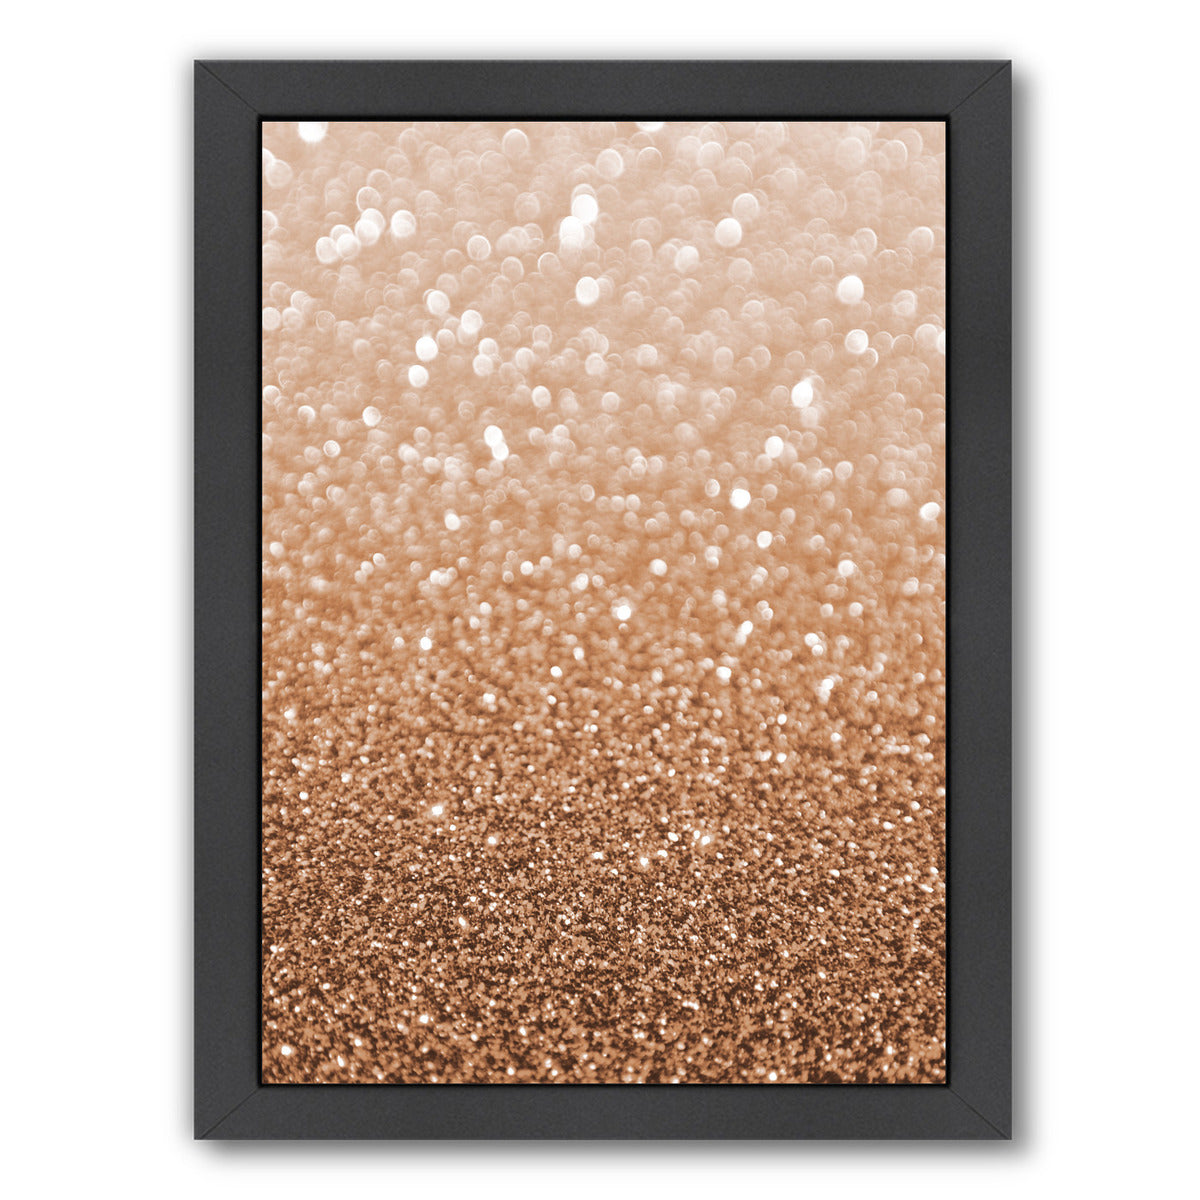 Copper Shiny Texture by Emanuela Carratoni Framed Print - Americanflat